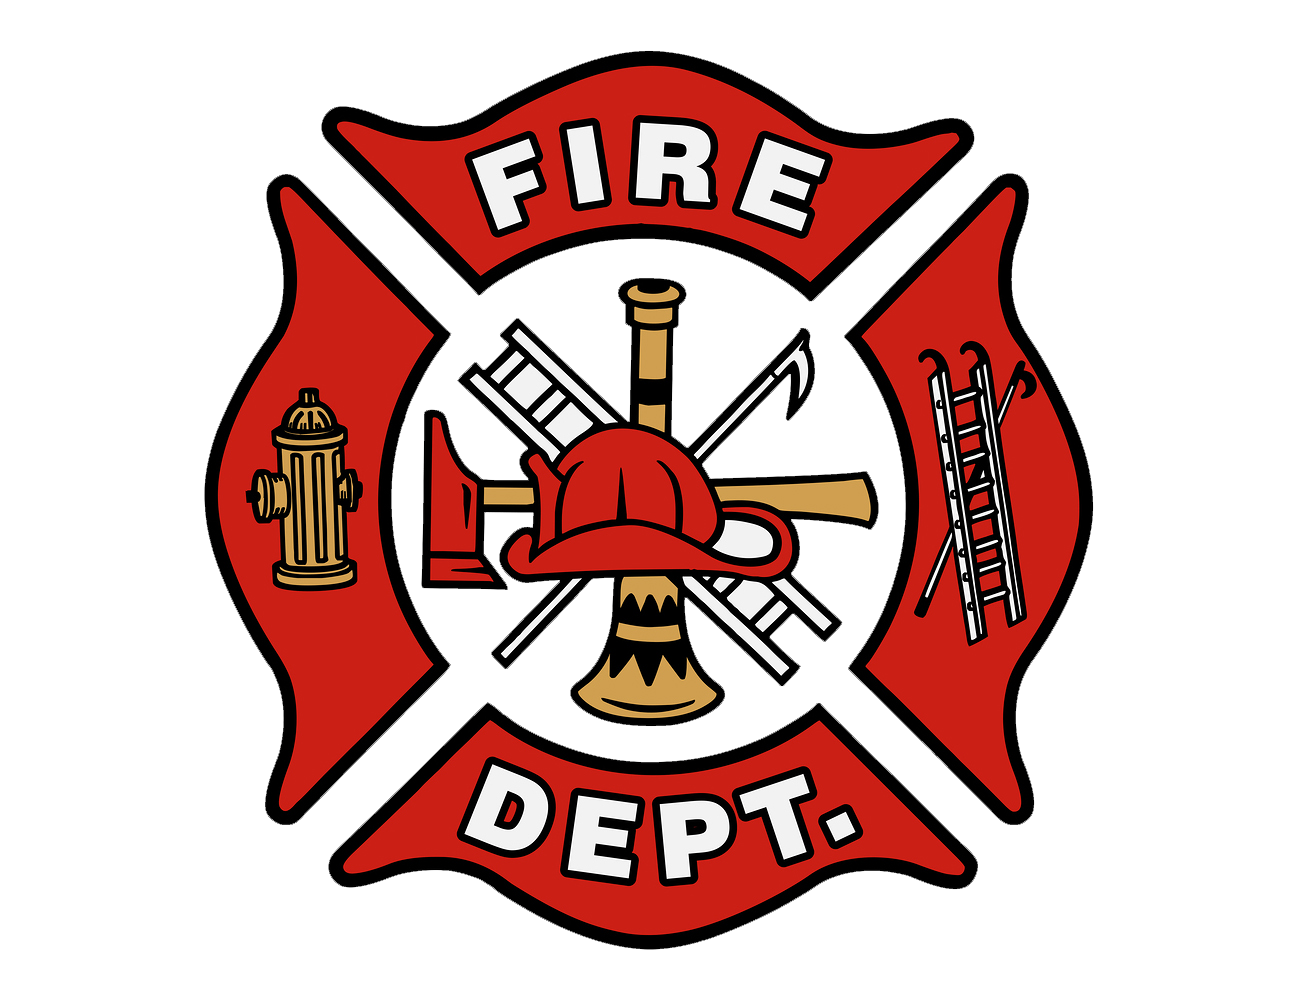 Meaning Fire Department logo and symbol.